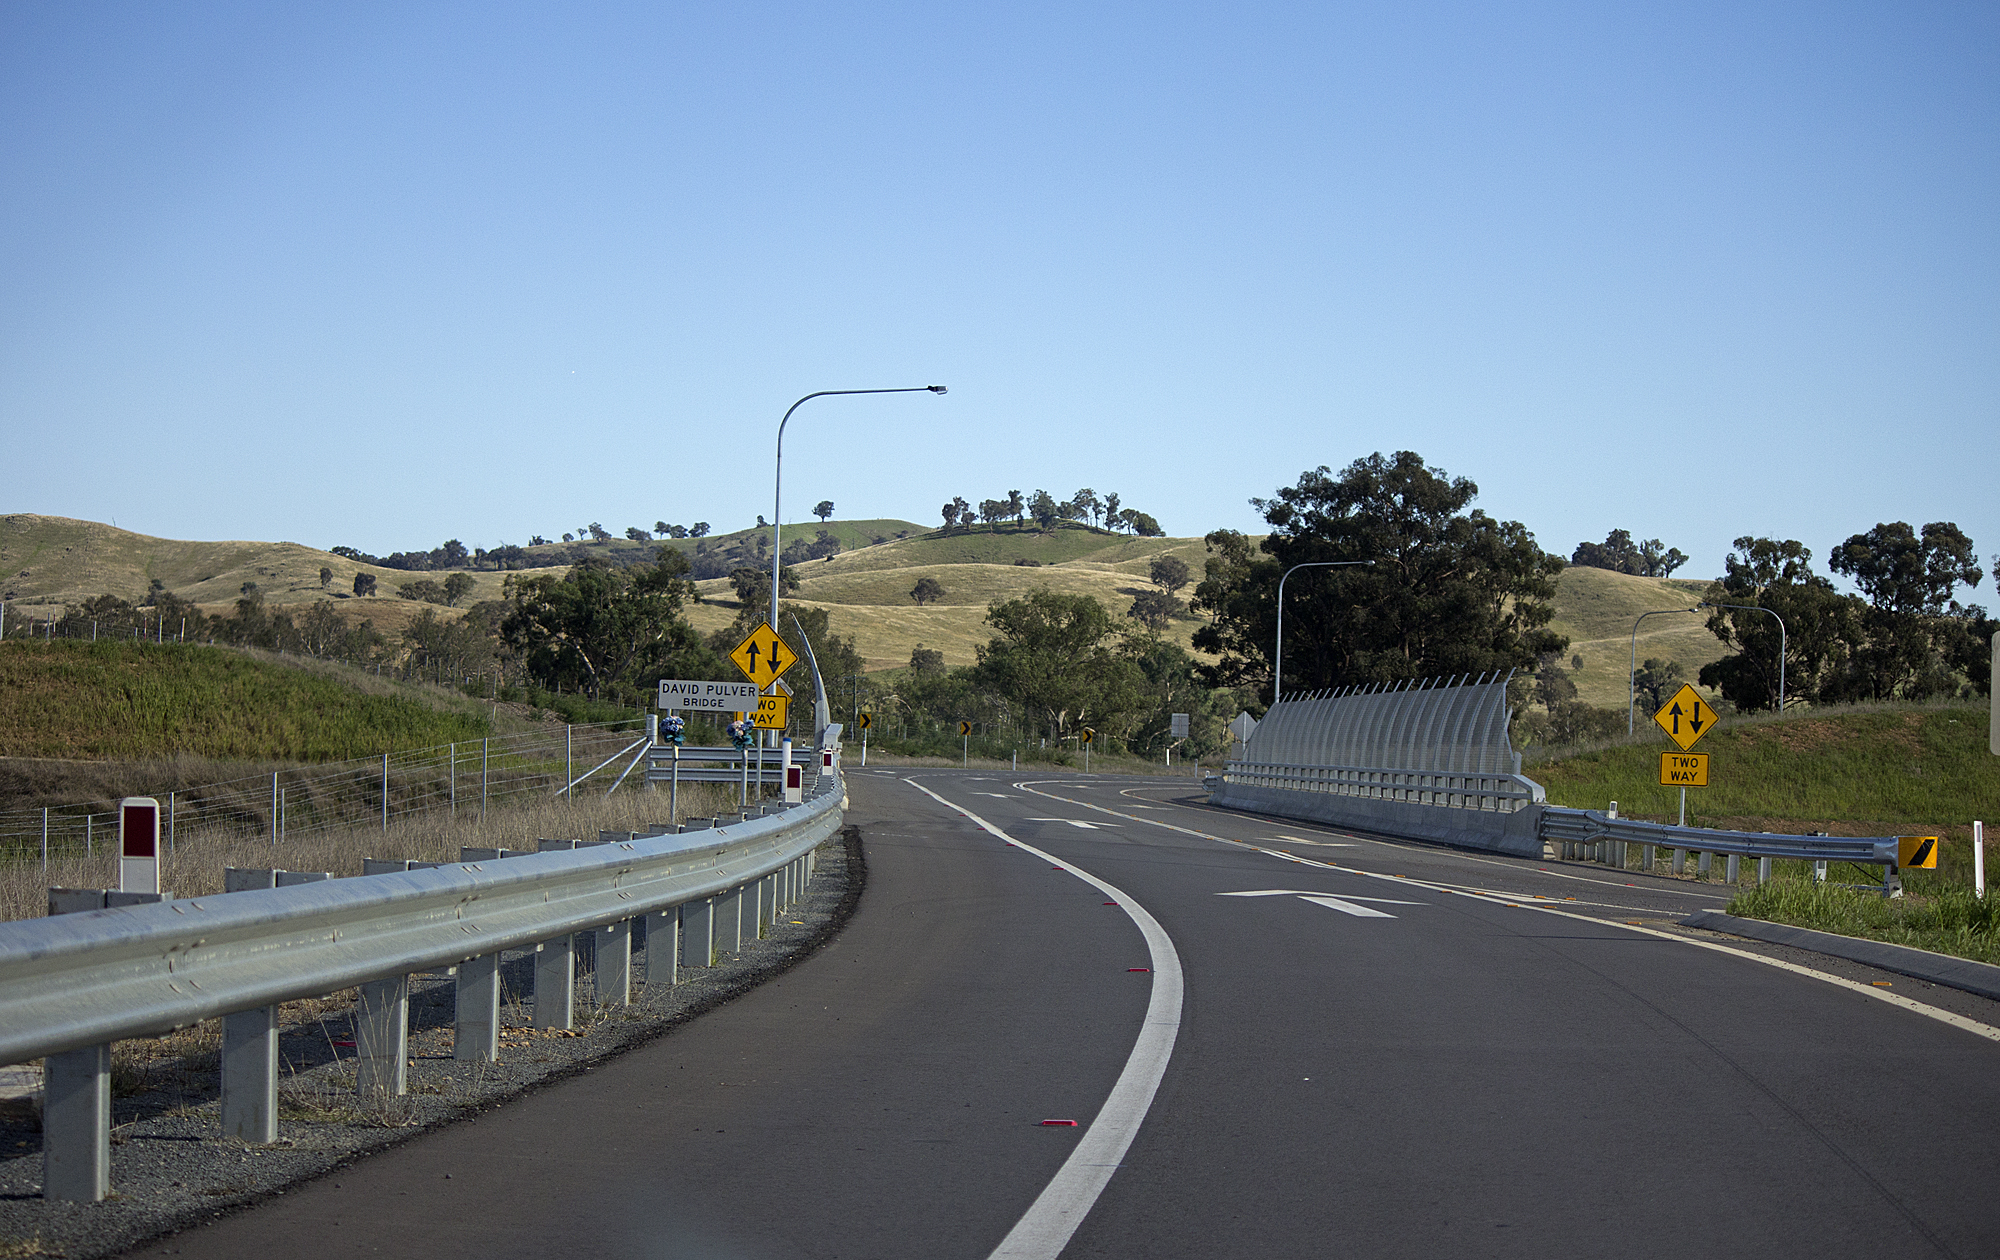 File:David Pulver Bridge over the Hume Highway and serves as